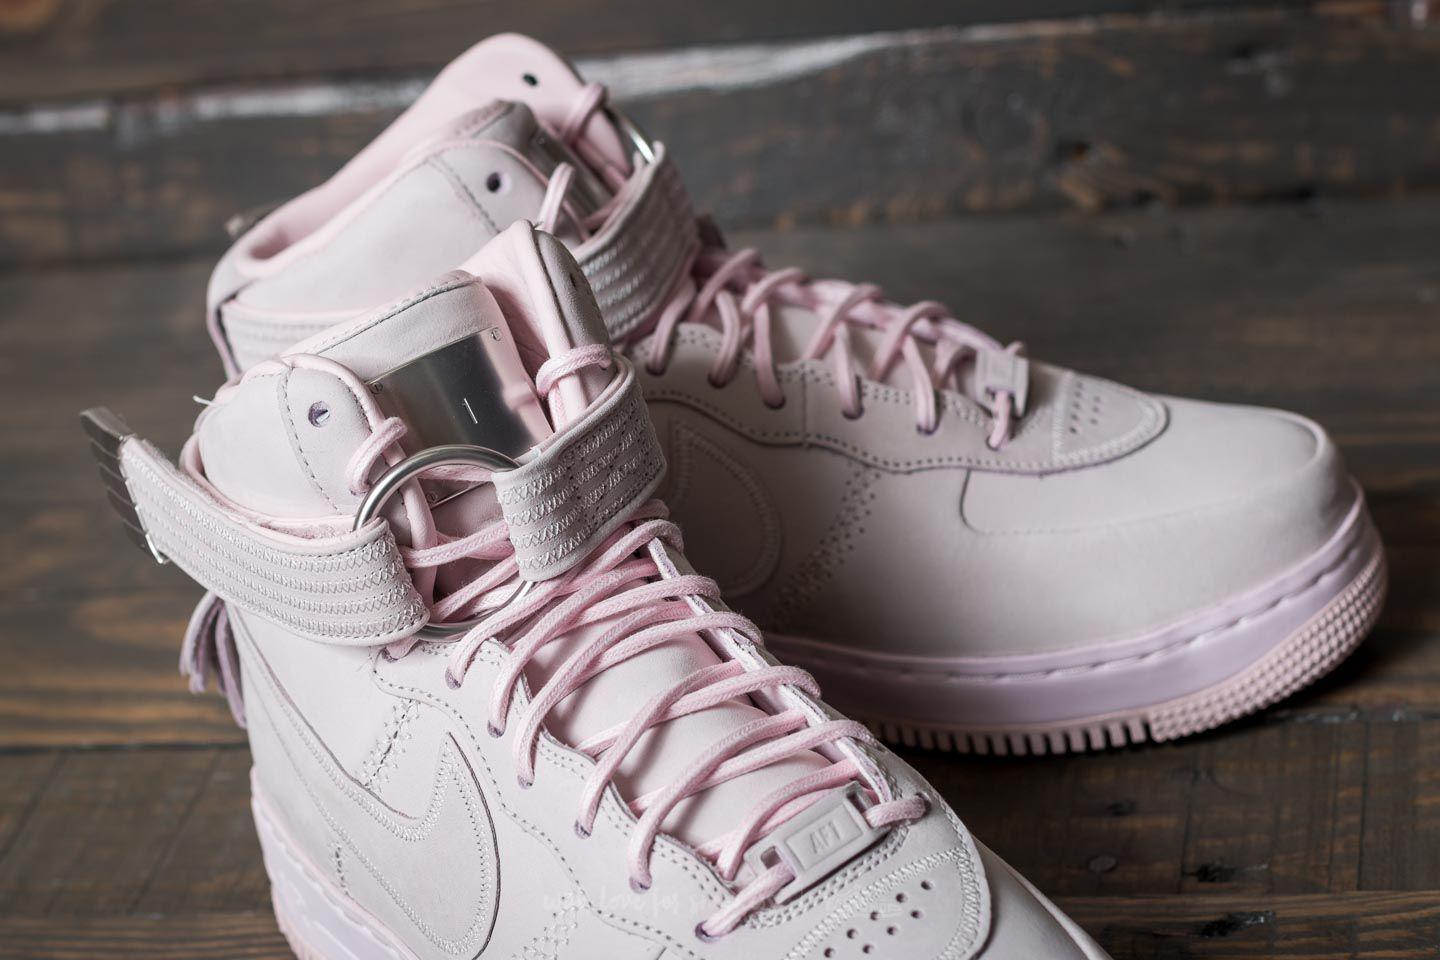 reputable site 25d84 0772a Lyst - Nike Air Force 1 High Sl Pearl Pink Pearl Pink in Pin